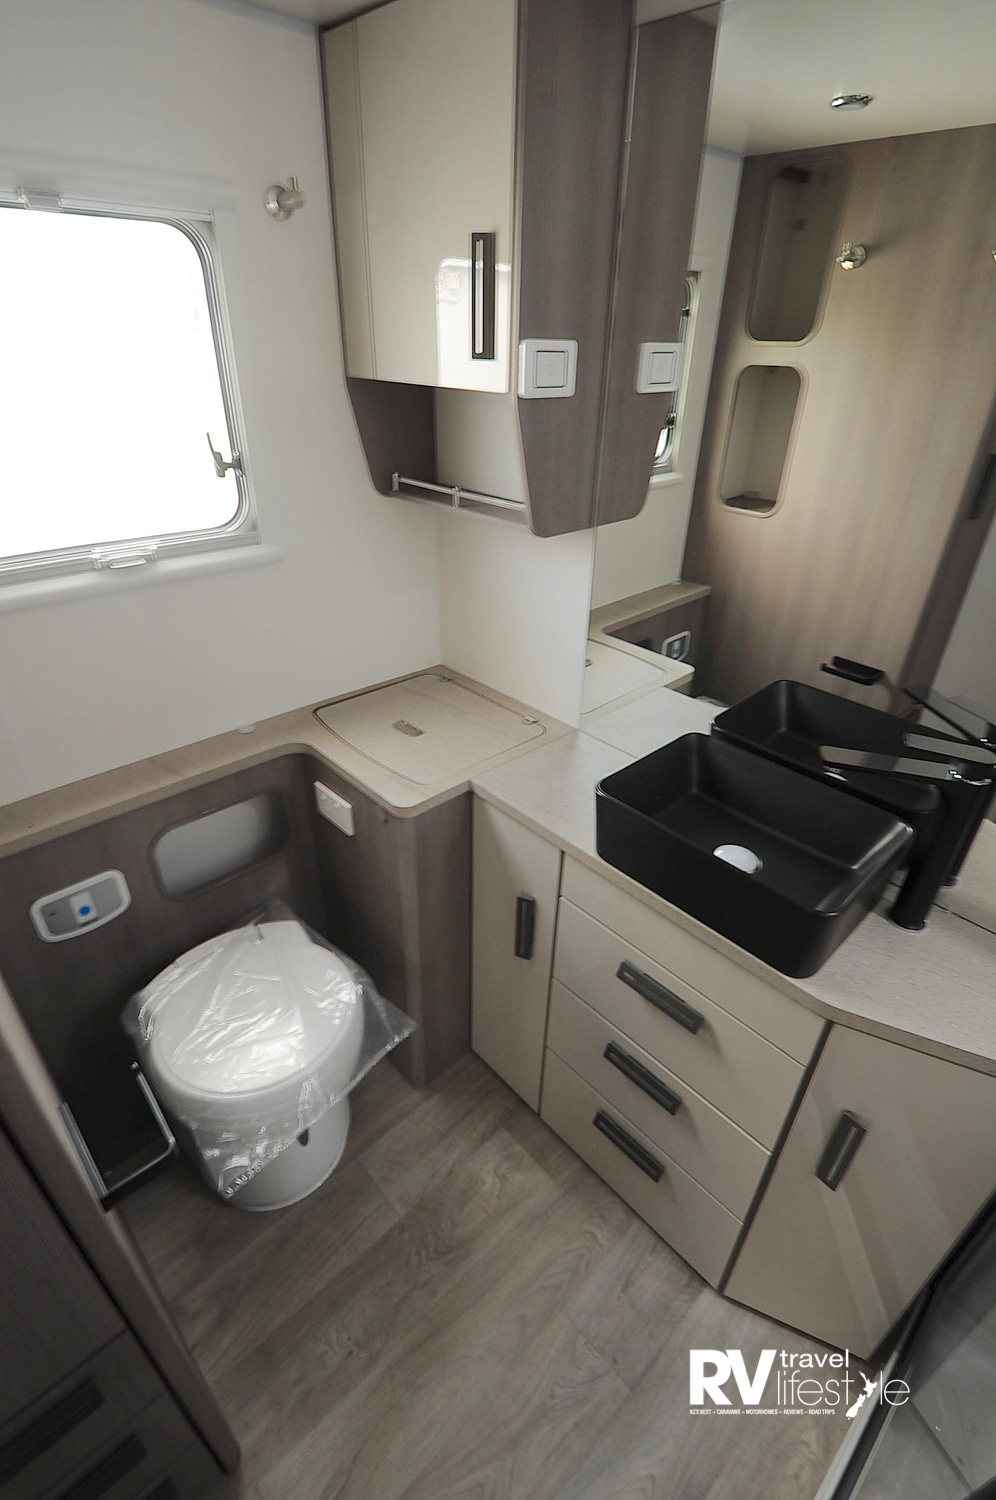 The full width bathroom, plenty of storage, the lift-up lid in the corner is home to a 3kg washing machine, toilet is electric flush cassette; full-sized shower on the right out of shot